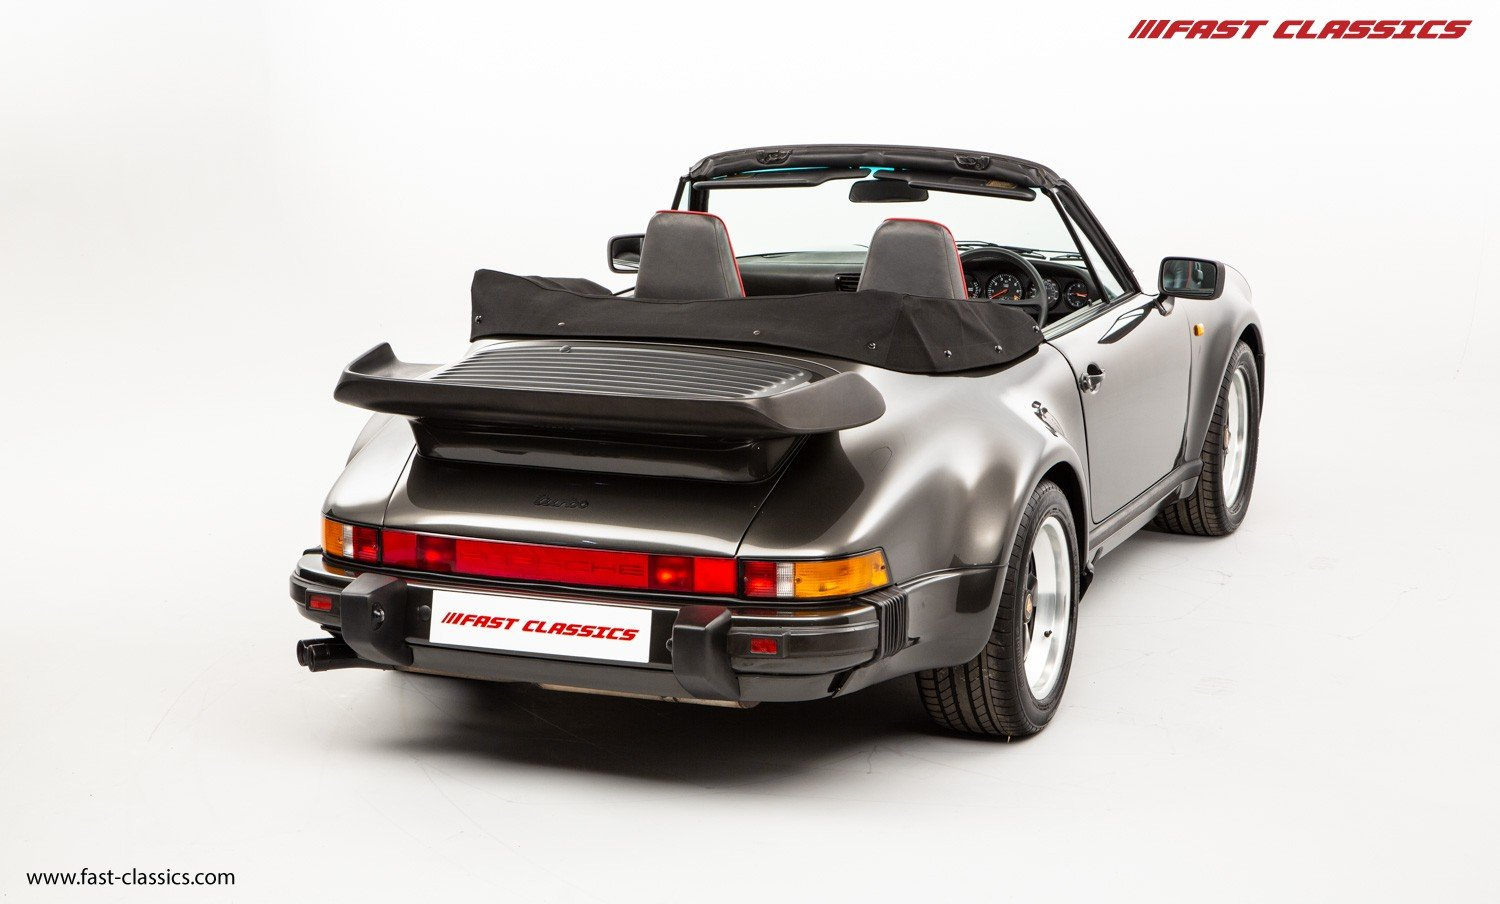 1990 PORSCHE 911 TURBO CABR // SLATE GREY // G50 GEARBOX  For Sale (picture 3 of 6)